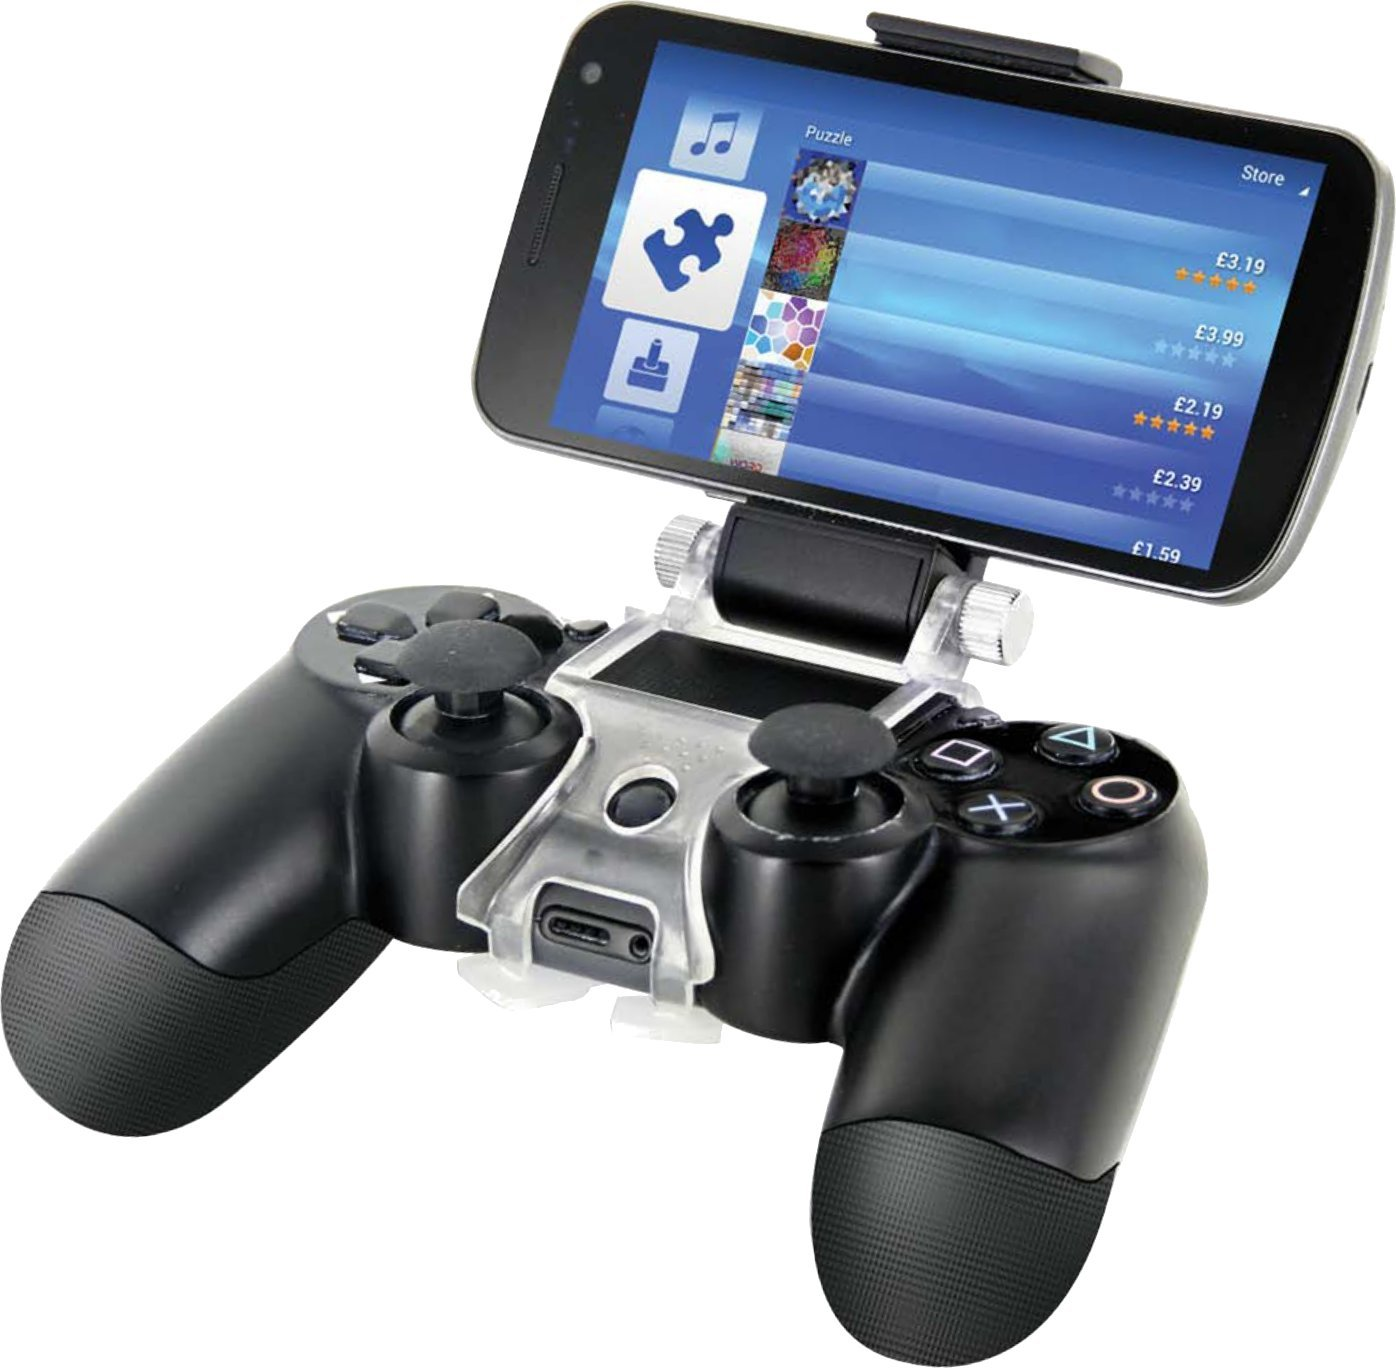 Playstation Contact Attach Your Smartphone To Your Ps4 Controller